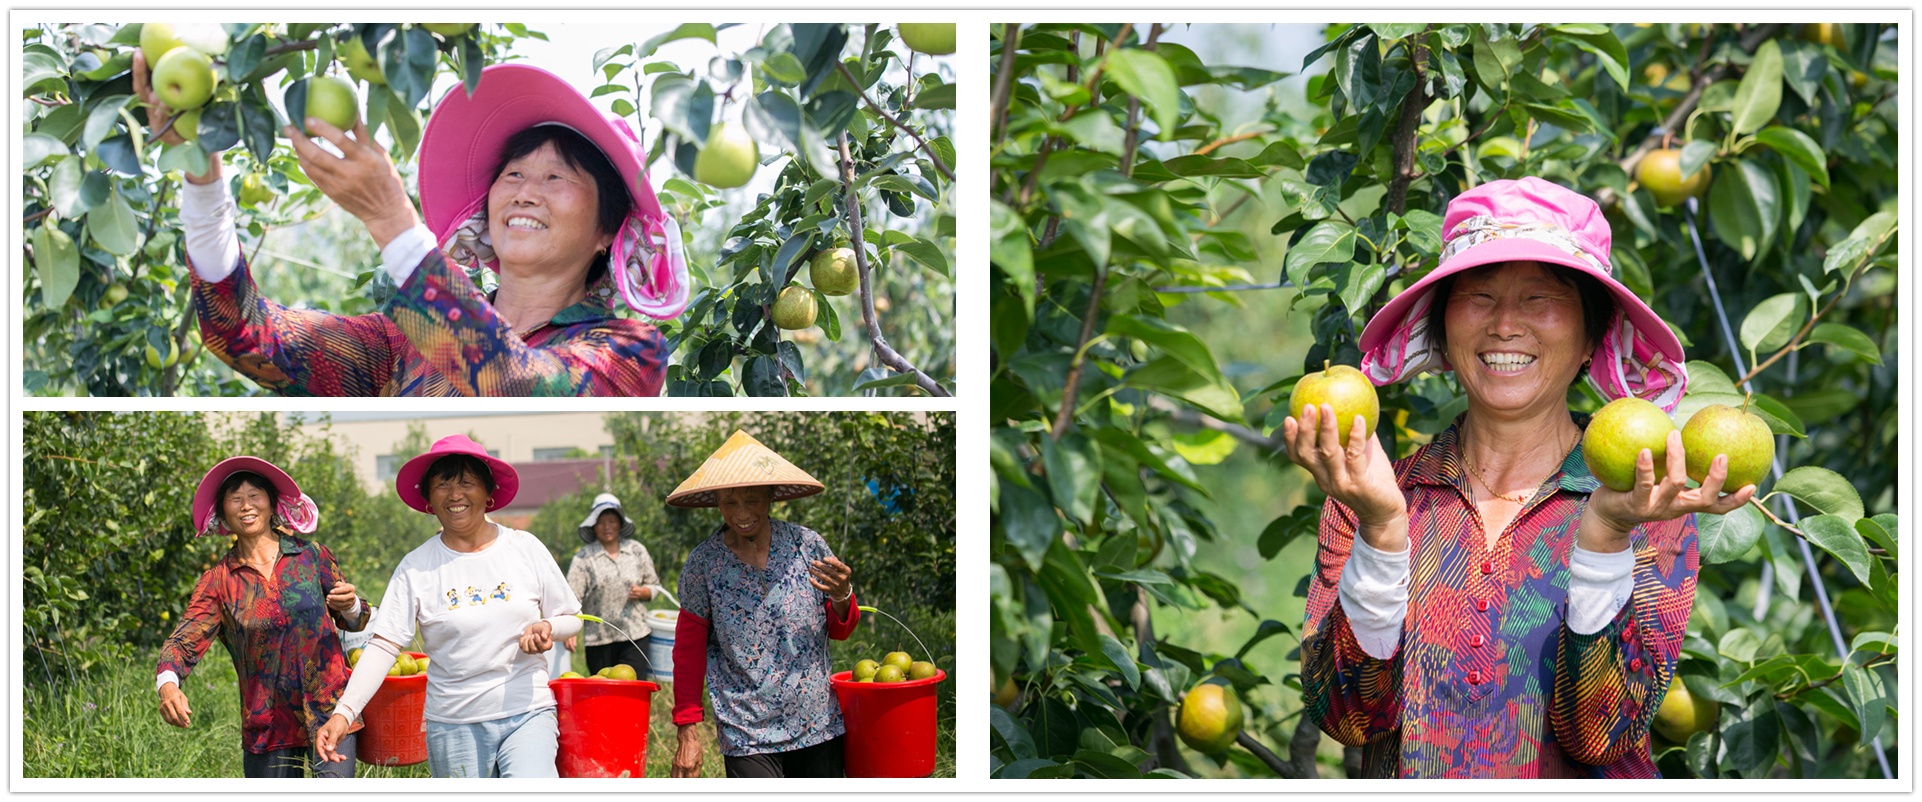 Crunchy pears ready to hit market in Nantong